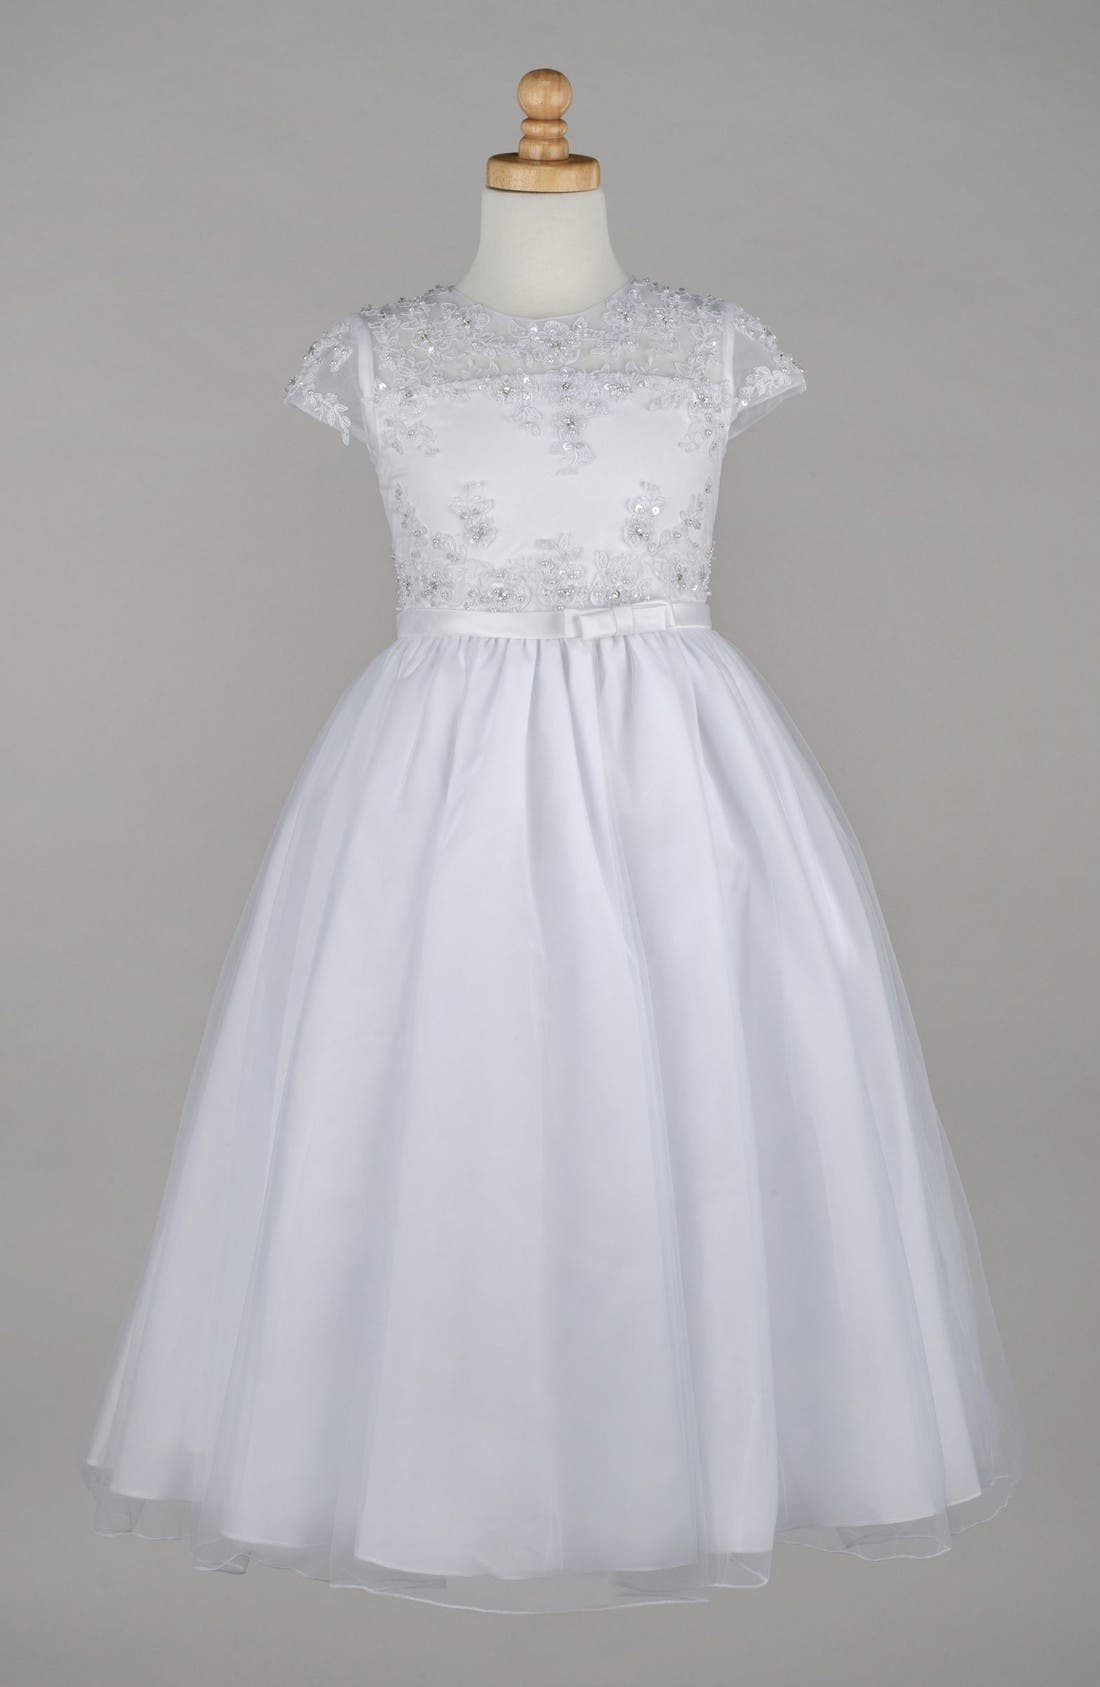 lauren marie beaded lace bodice first communion dress little girls u0026 big girls